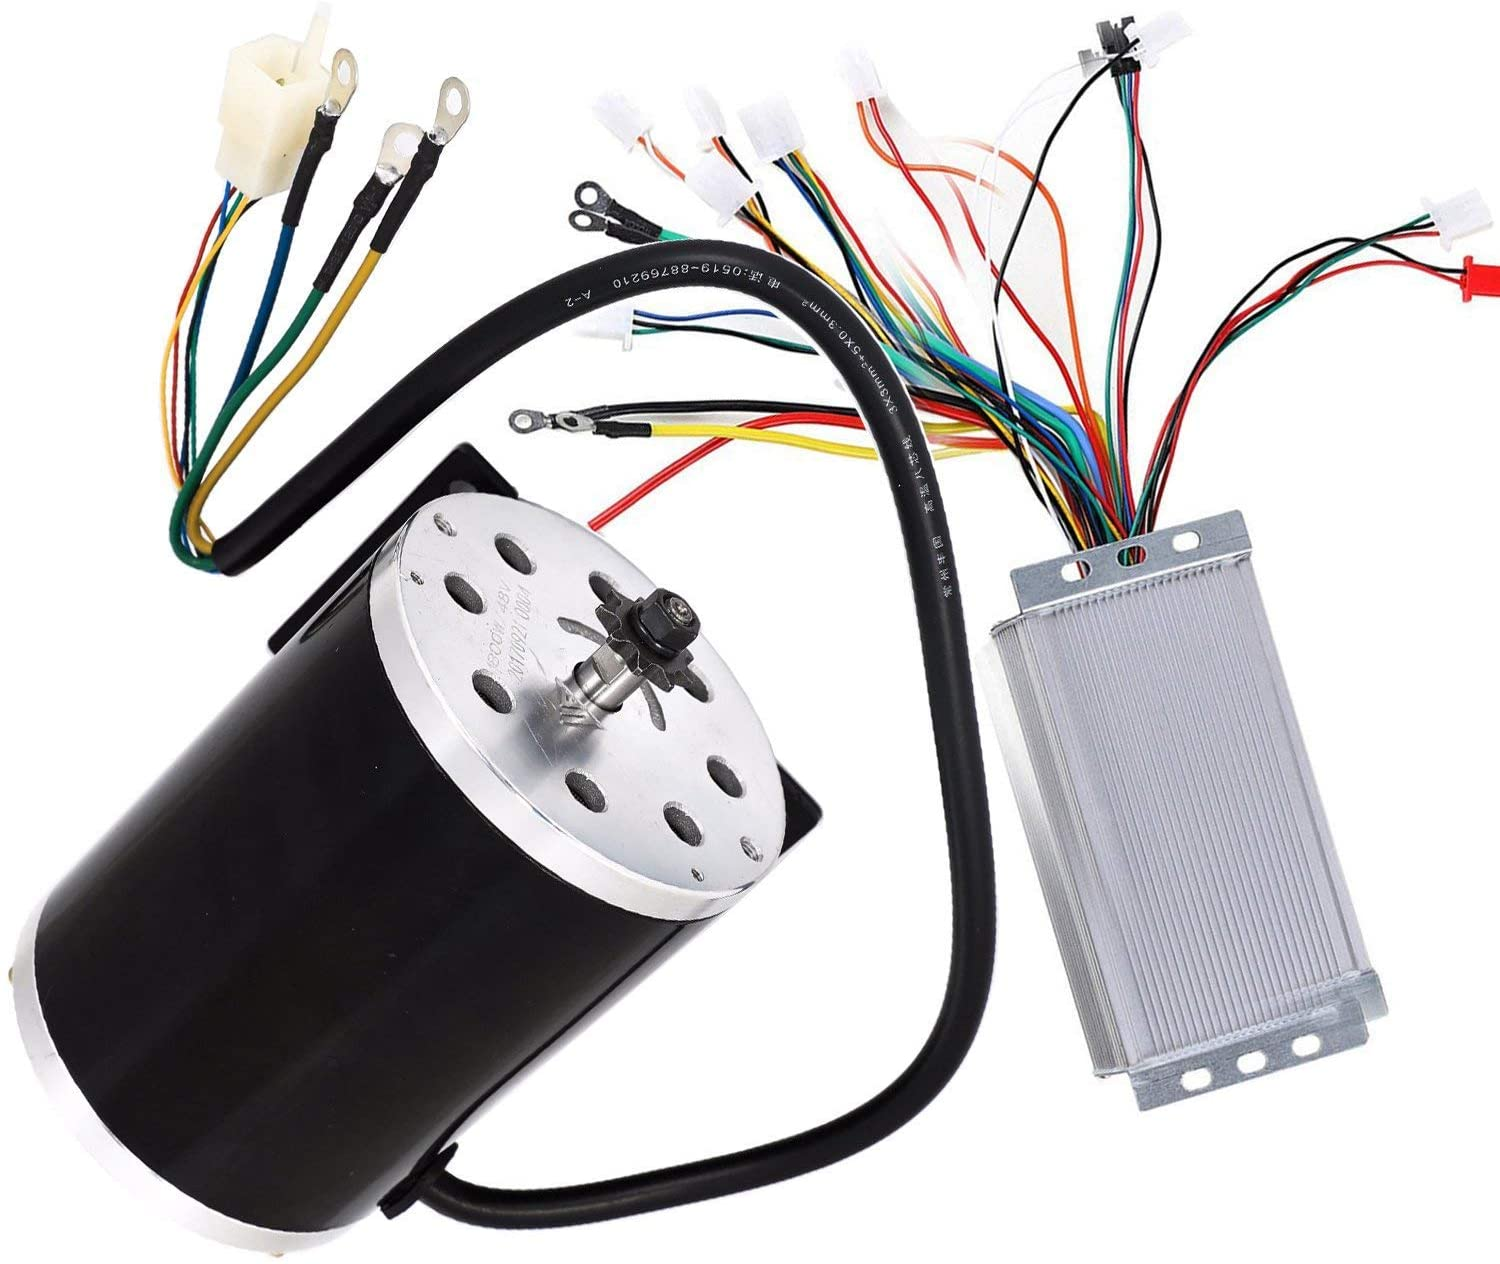 TDPRO 48V 1800W Brushless Electric Motor and Controller Set For Go Kart Scooter E Bike Motorized Bicycle ATV Moped Mini Bikes